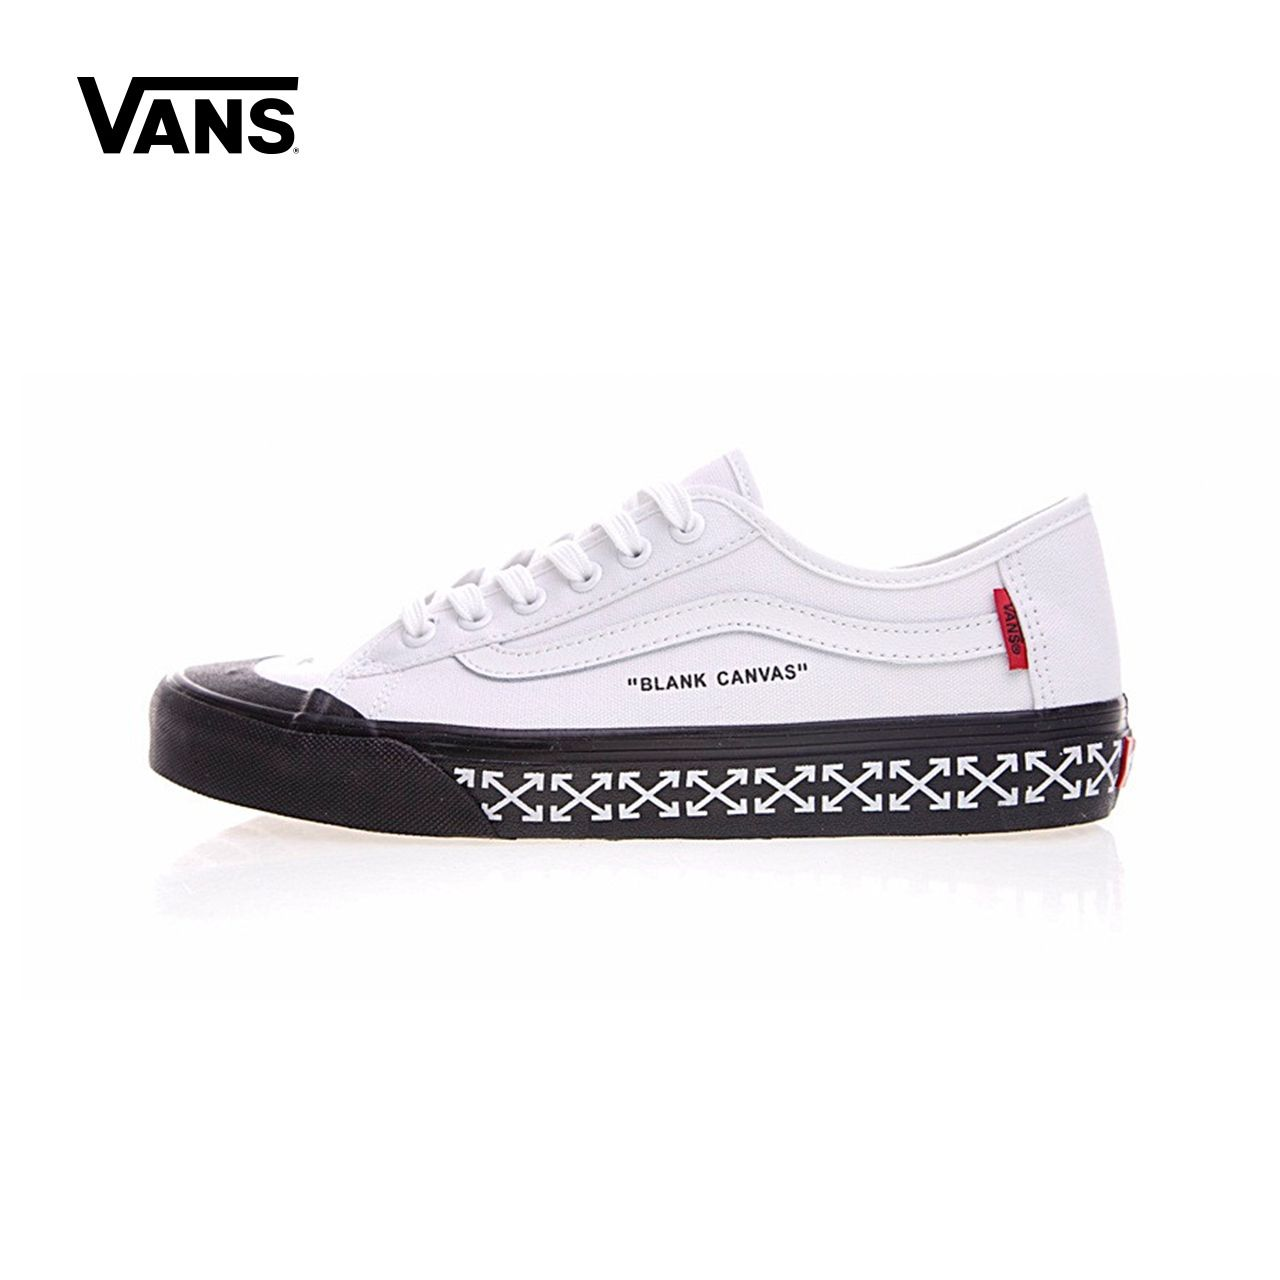 Original New Arrival Vans Men & Women's Classic Old Skool X OFF-WHITE Low-top Skateboarding Shoes Sneakers Canvas VN000D3HY2018